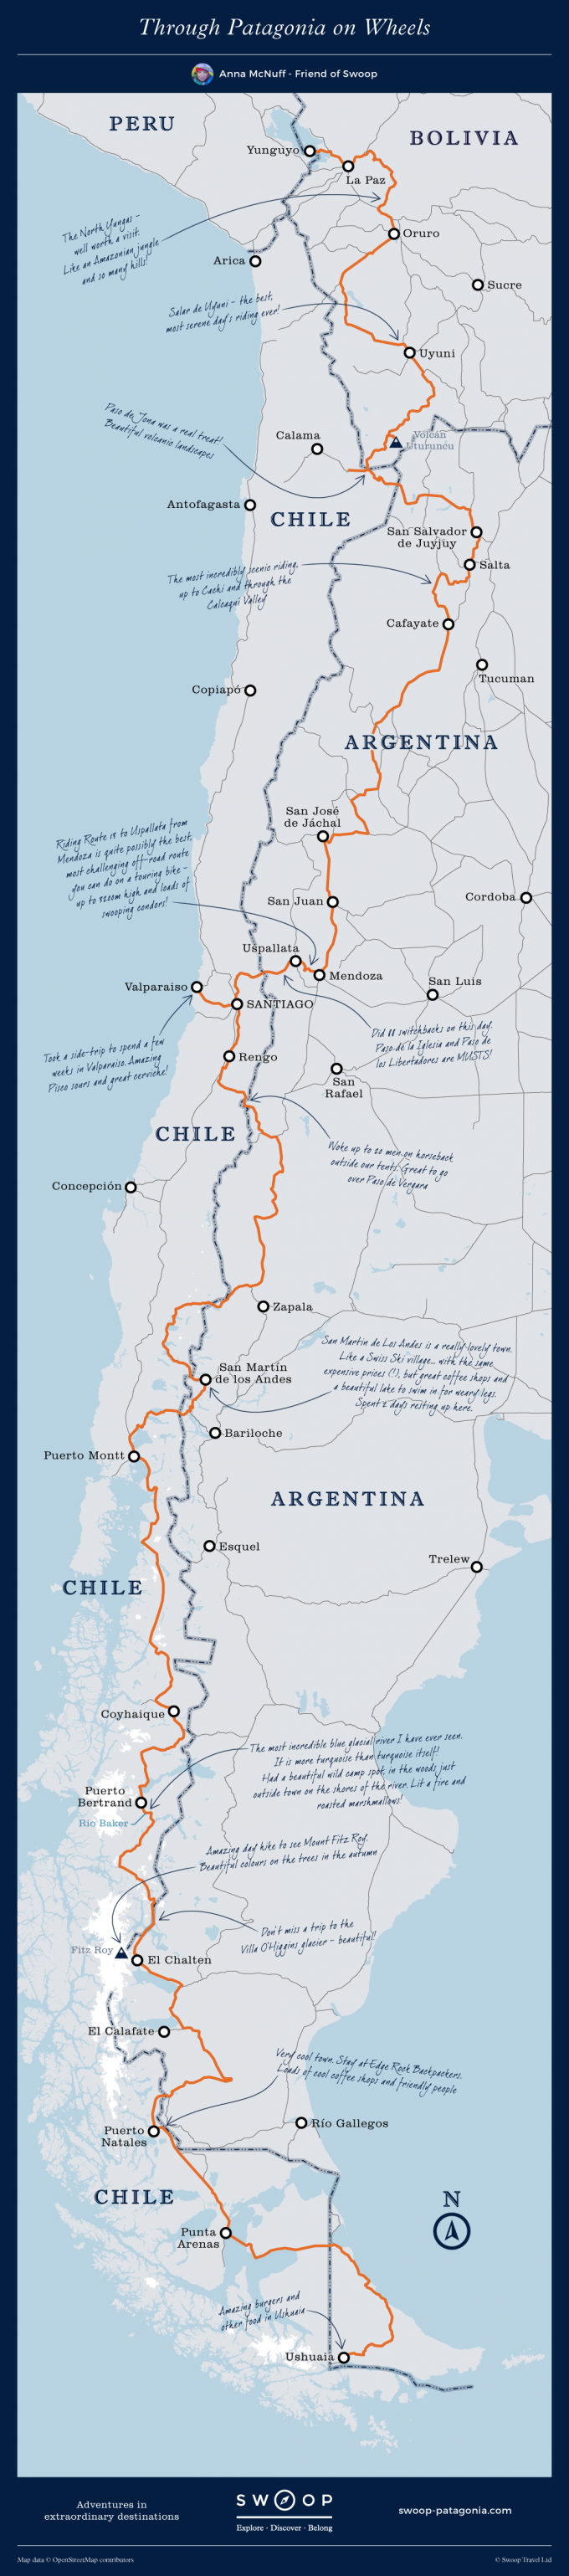 South America Cycle Route Map Anna McNuff